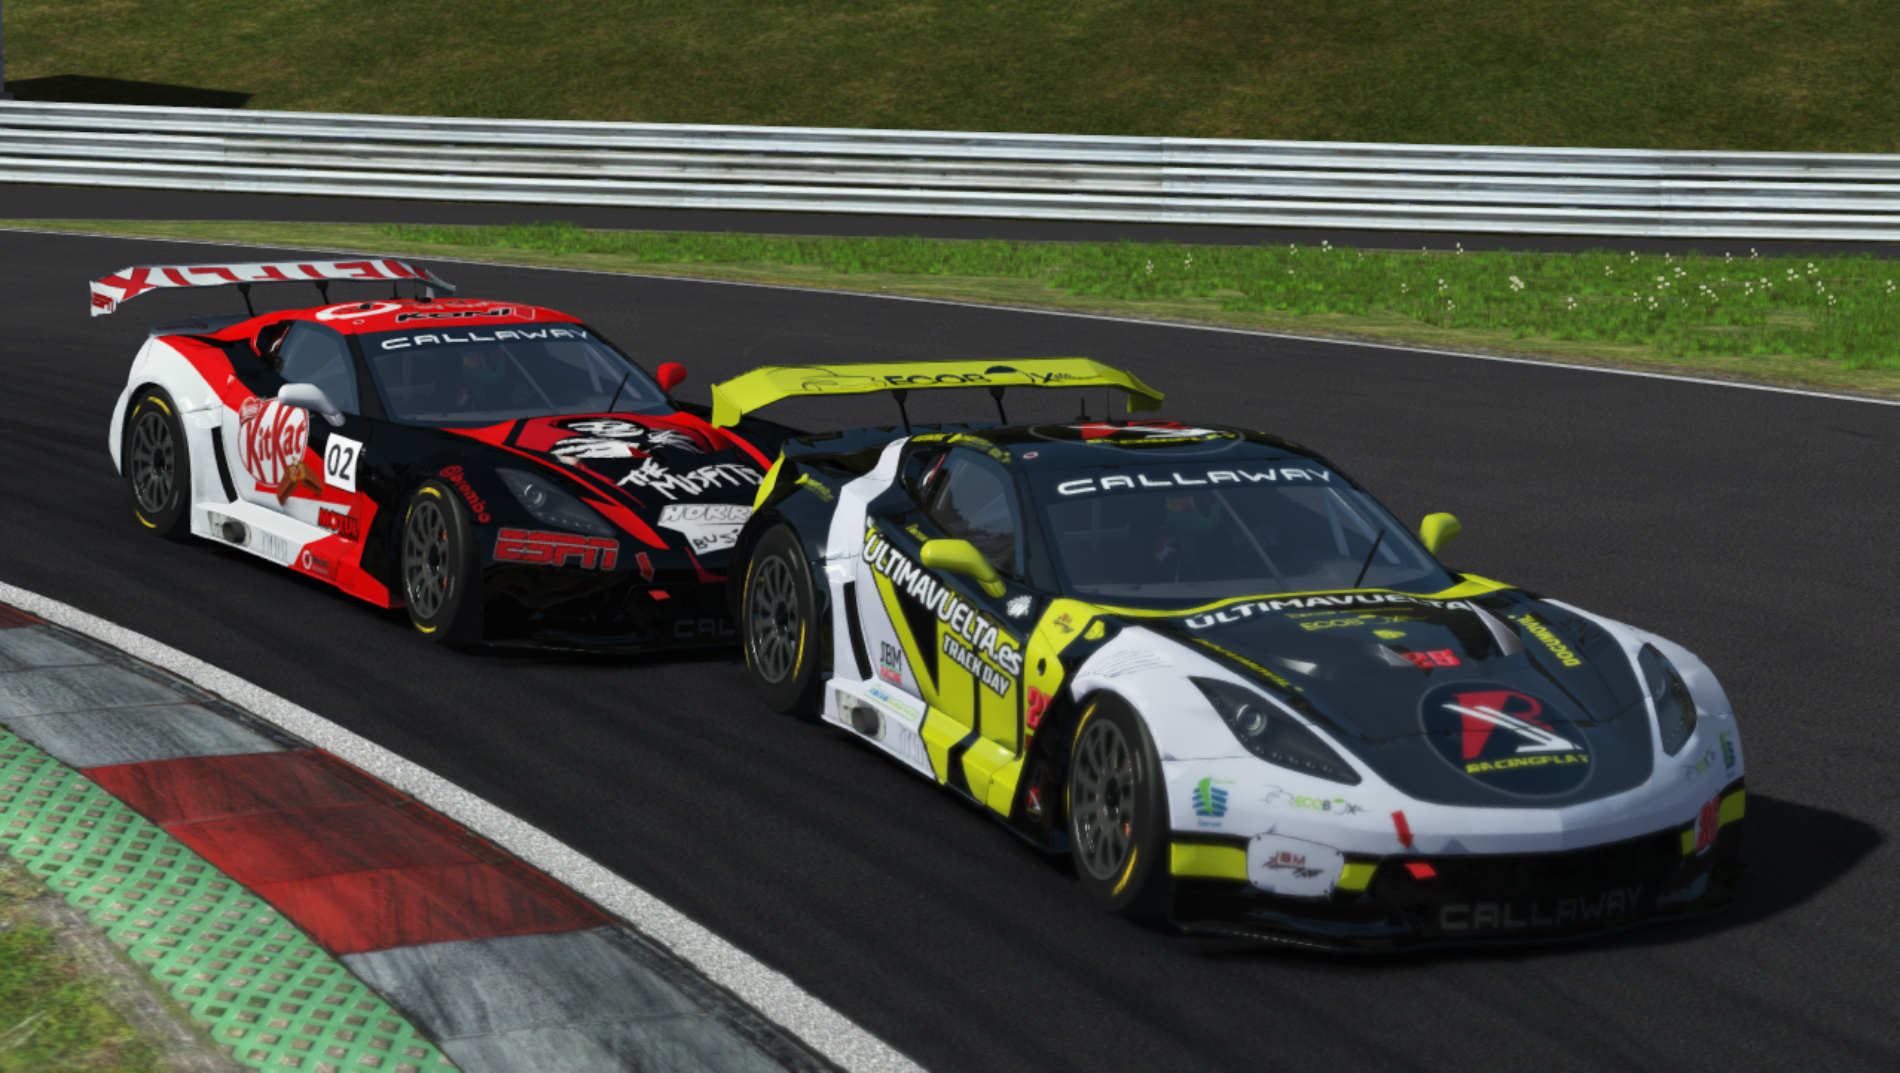 Resumen | Red Bull Ring  | Elkrack2 acaba con el dominio de Corvette.